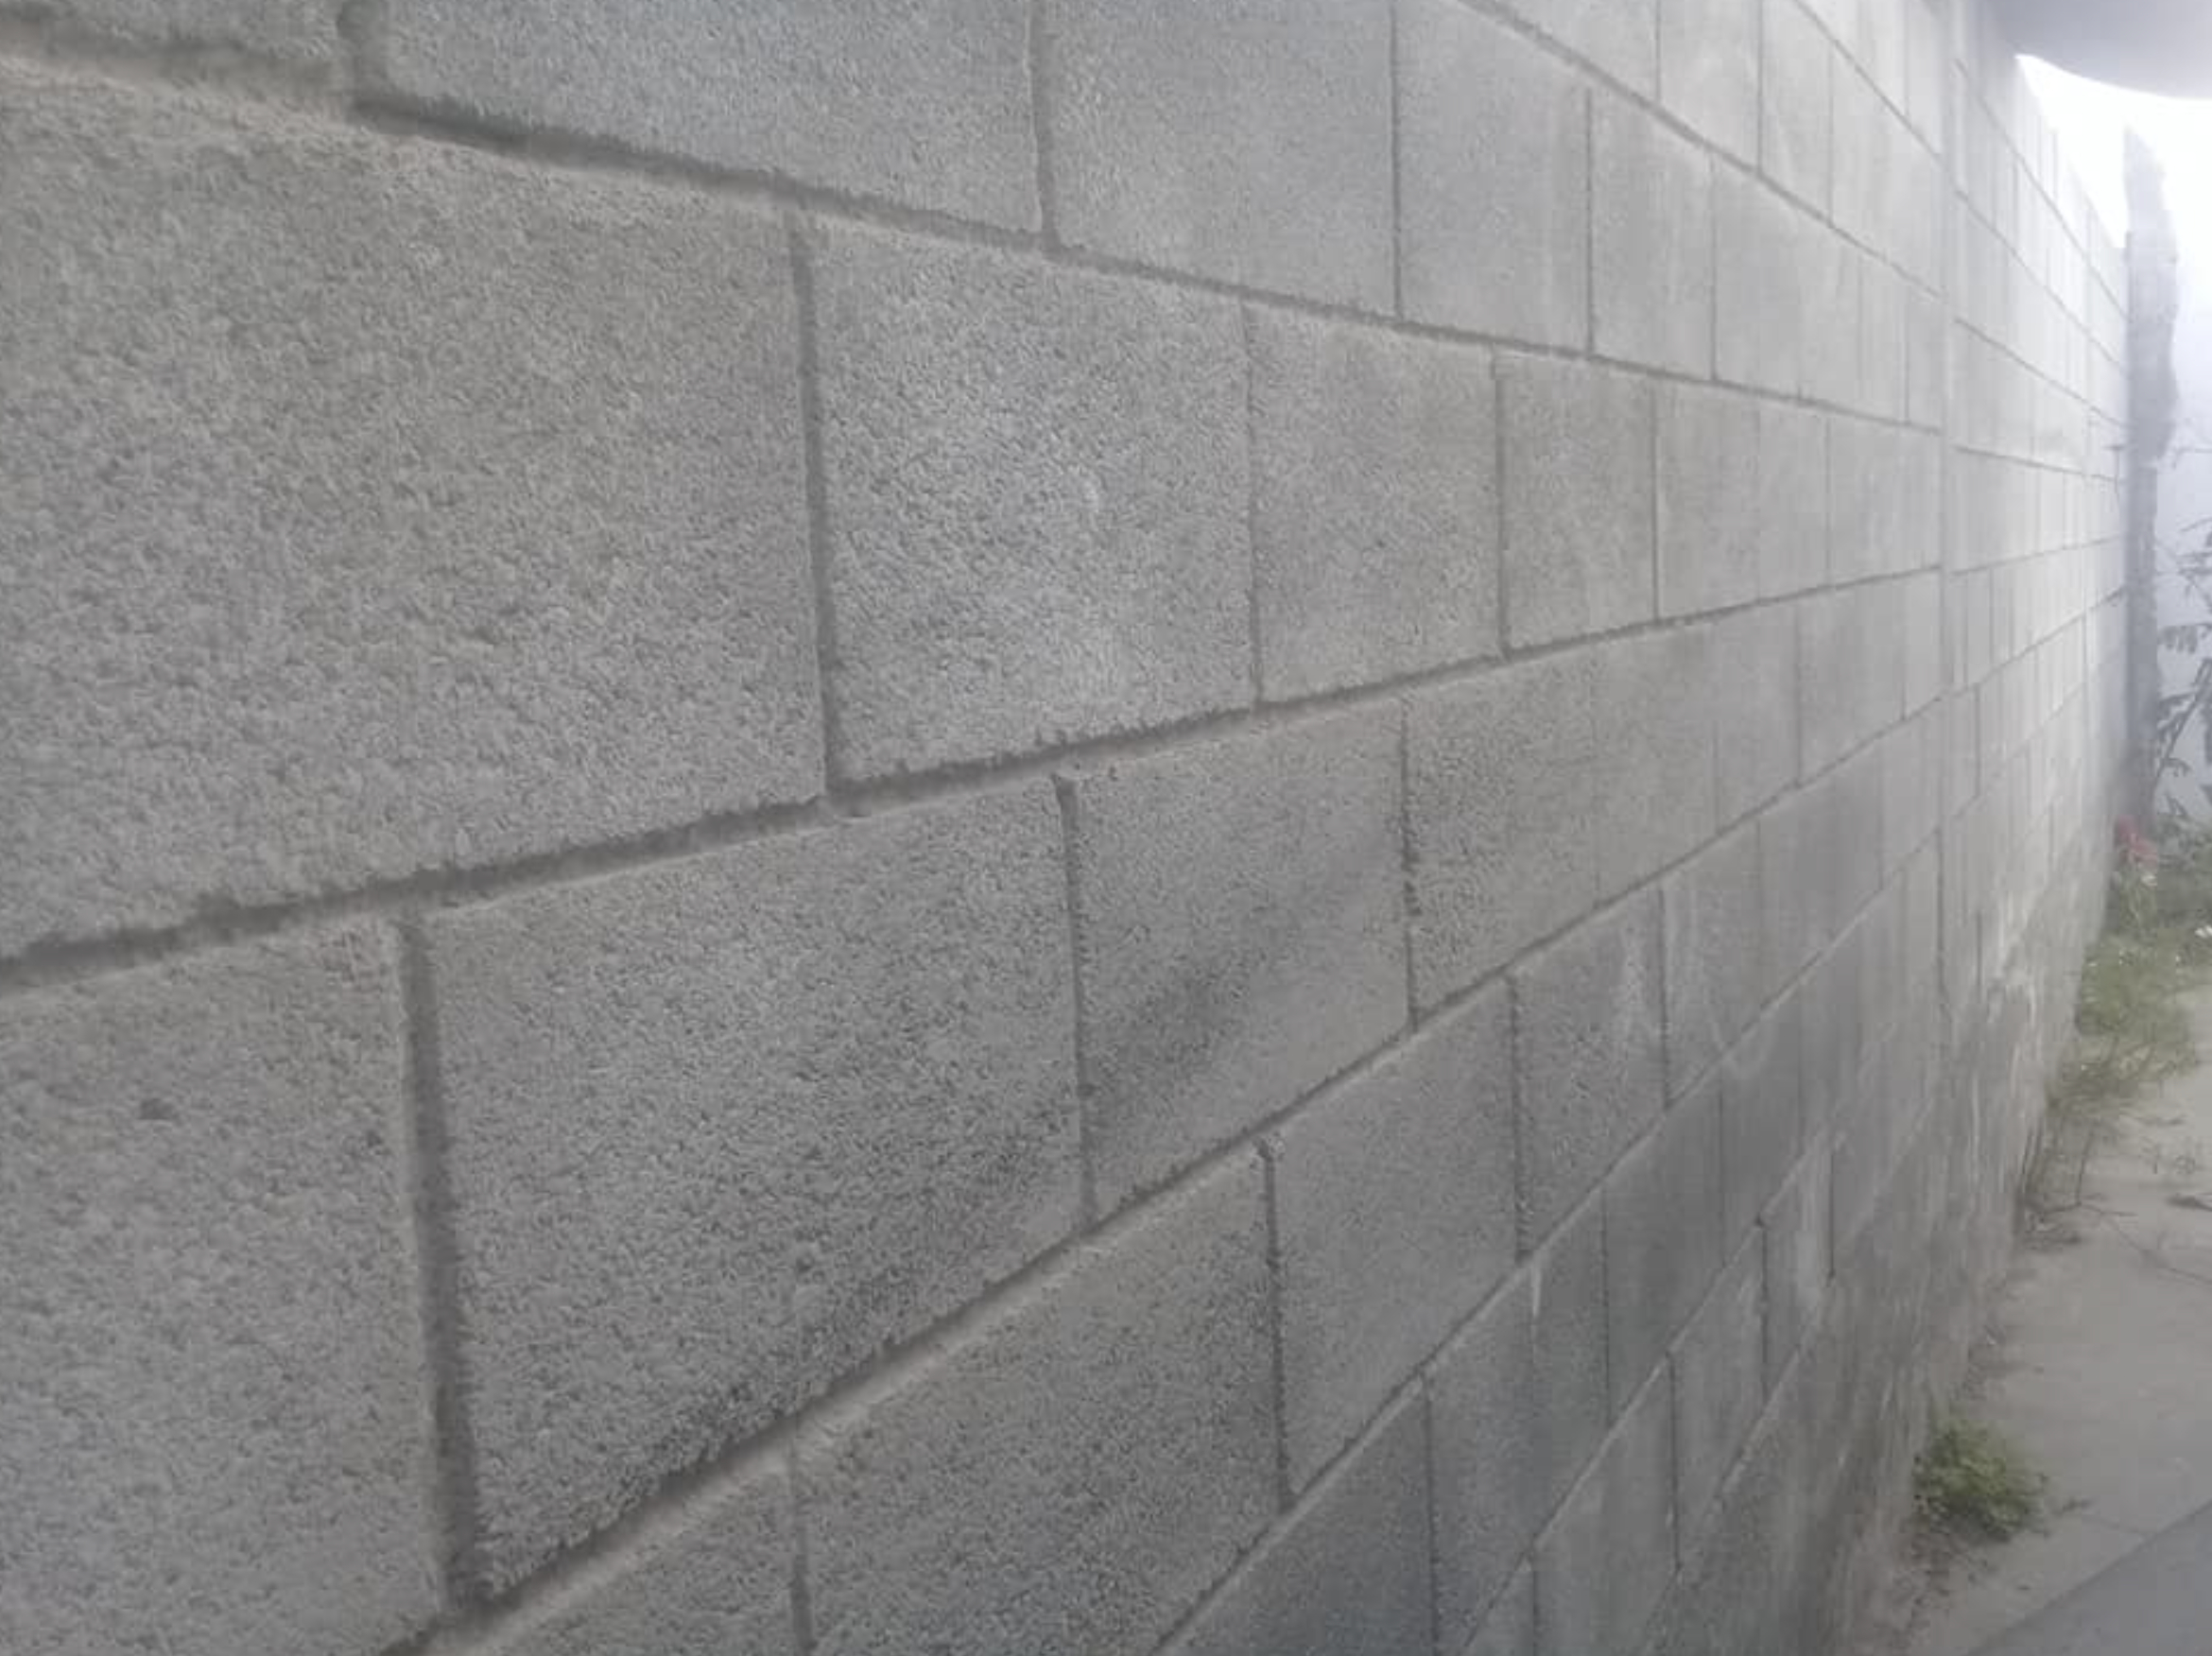 this image shows concrete wall in rancho Cucamonga, California